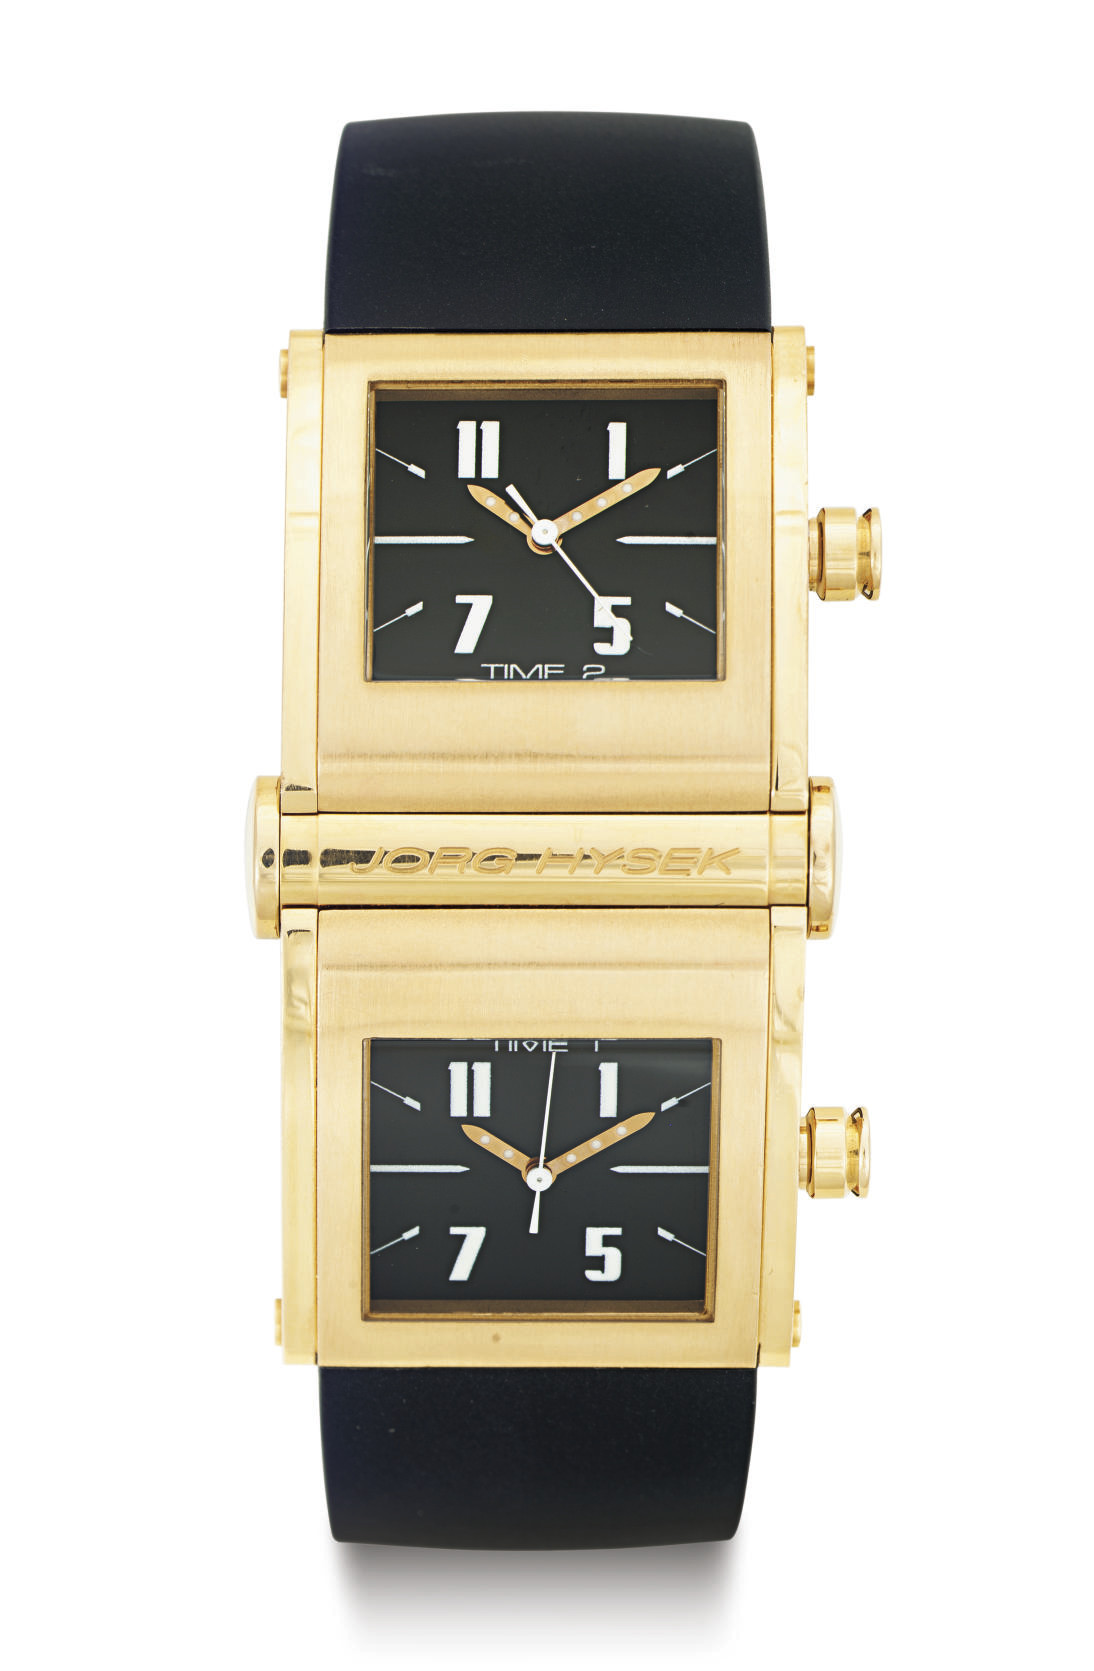 JORG HYSEK. A LIMITED EDITION 18K GOLD DOUBLE-DIALED DUAL TIME WRISTWATCH